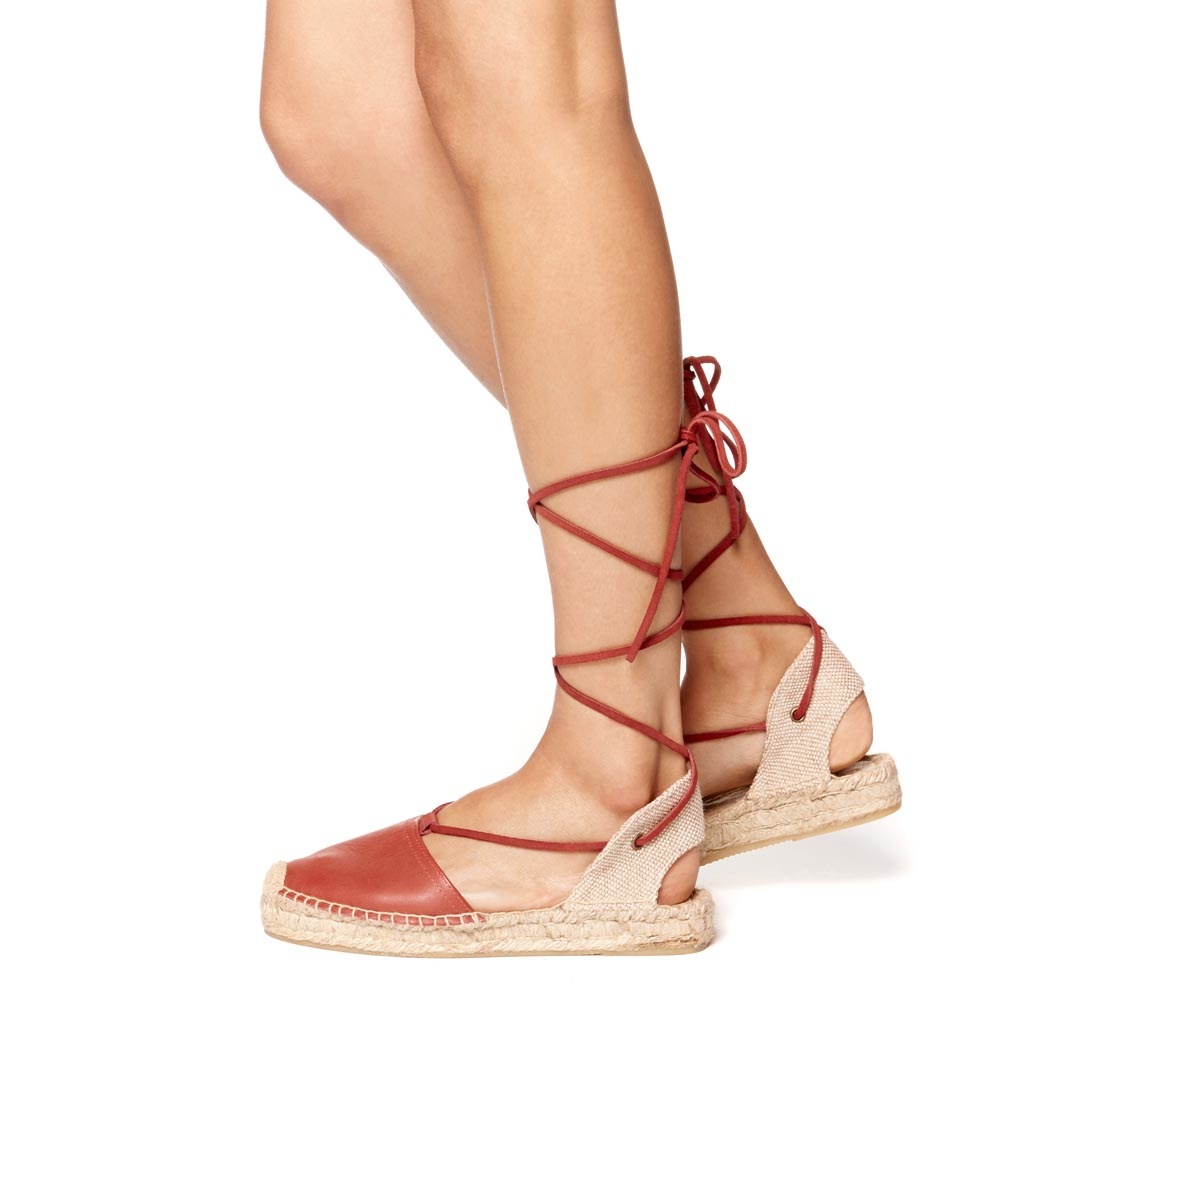 8eb82ce44e05 Soludos Leather Platform Gladiator Sandal in Red - Lyst